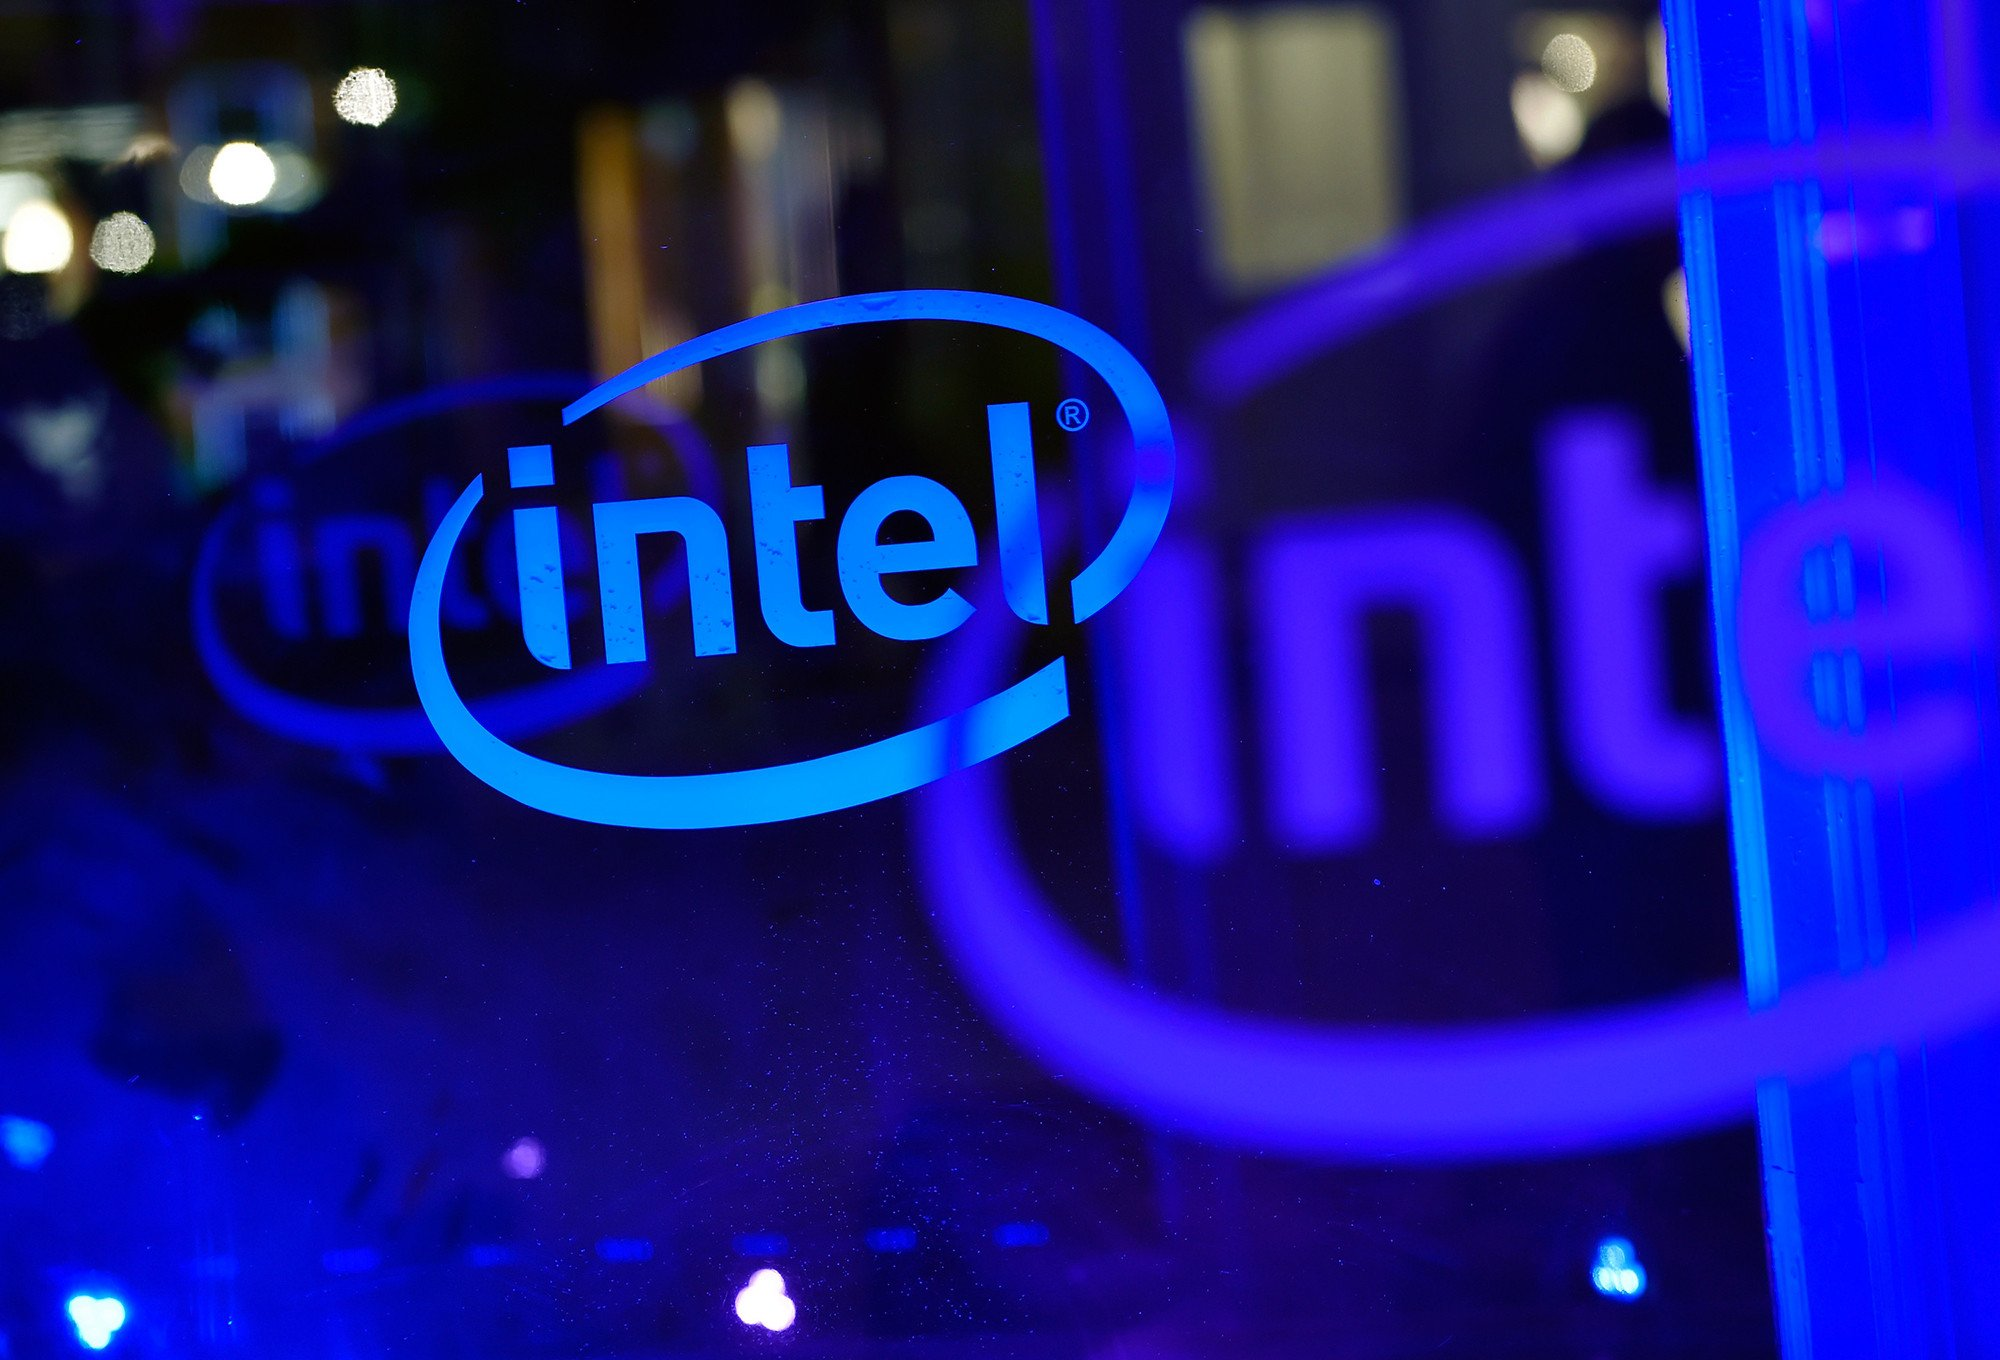 Intel slapped with dozens of lawsuits over security flaws